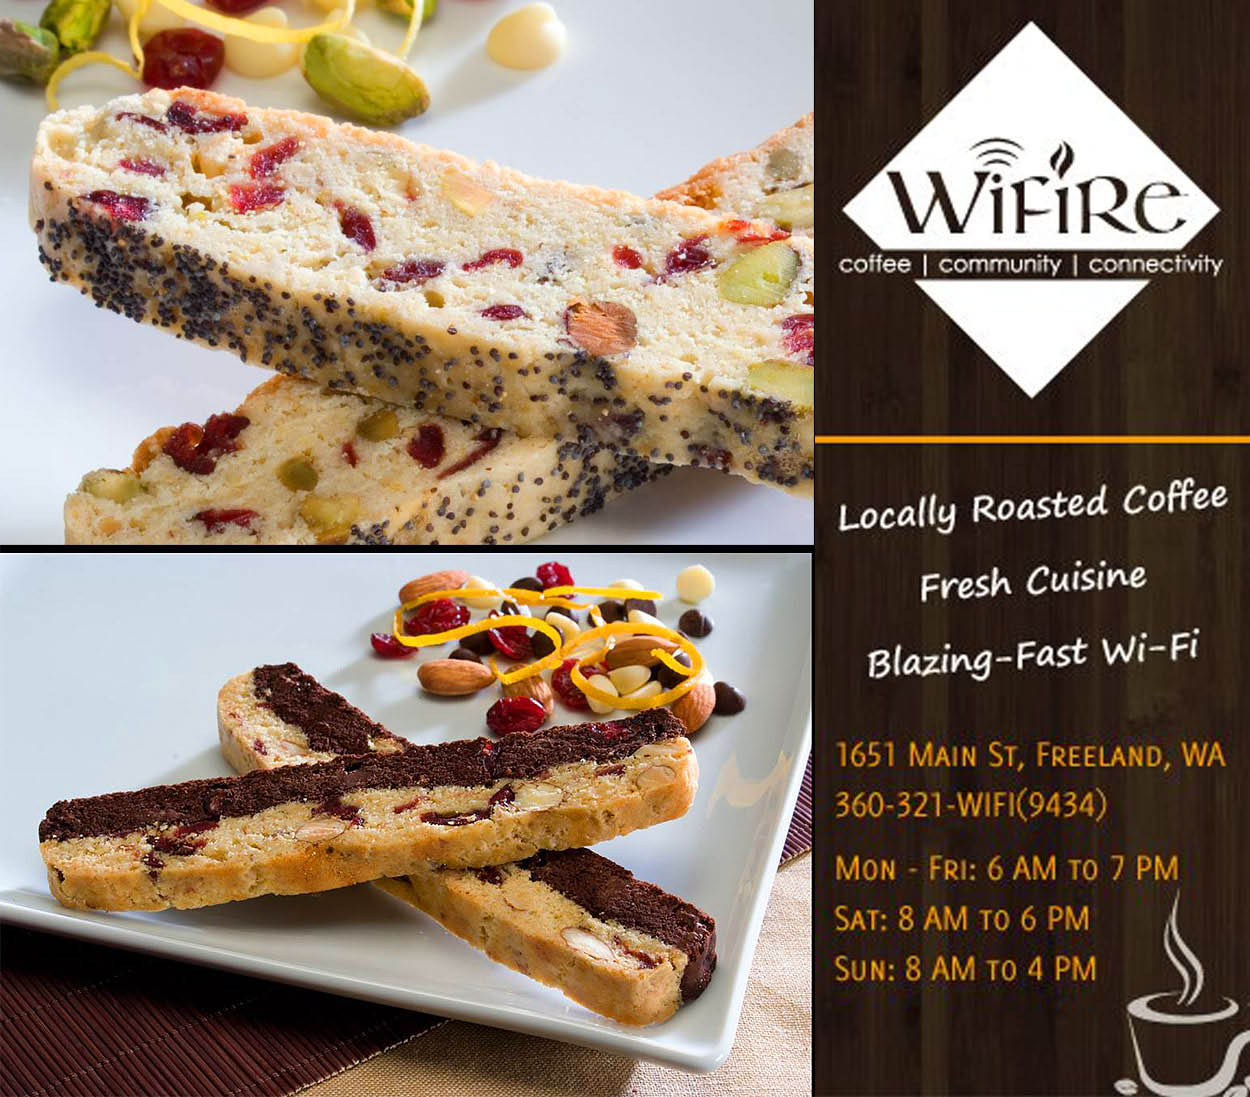 WiFire Cafe fresh baked biscotti, coffee locally roasted and fast wifi.